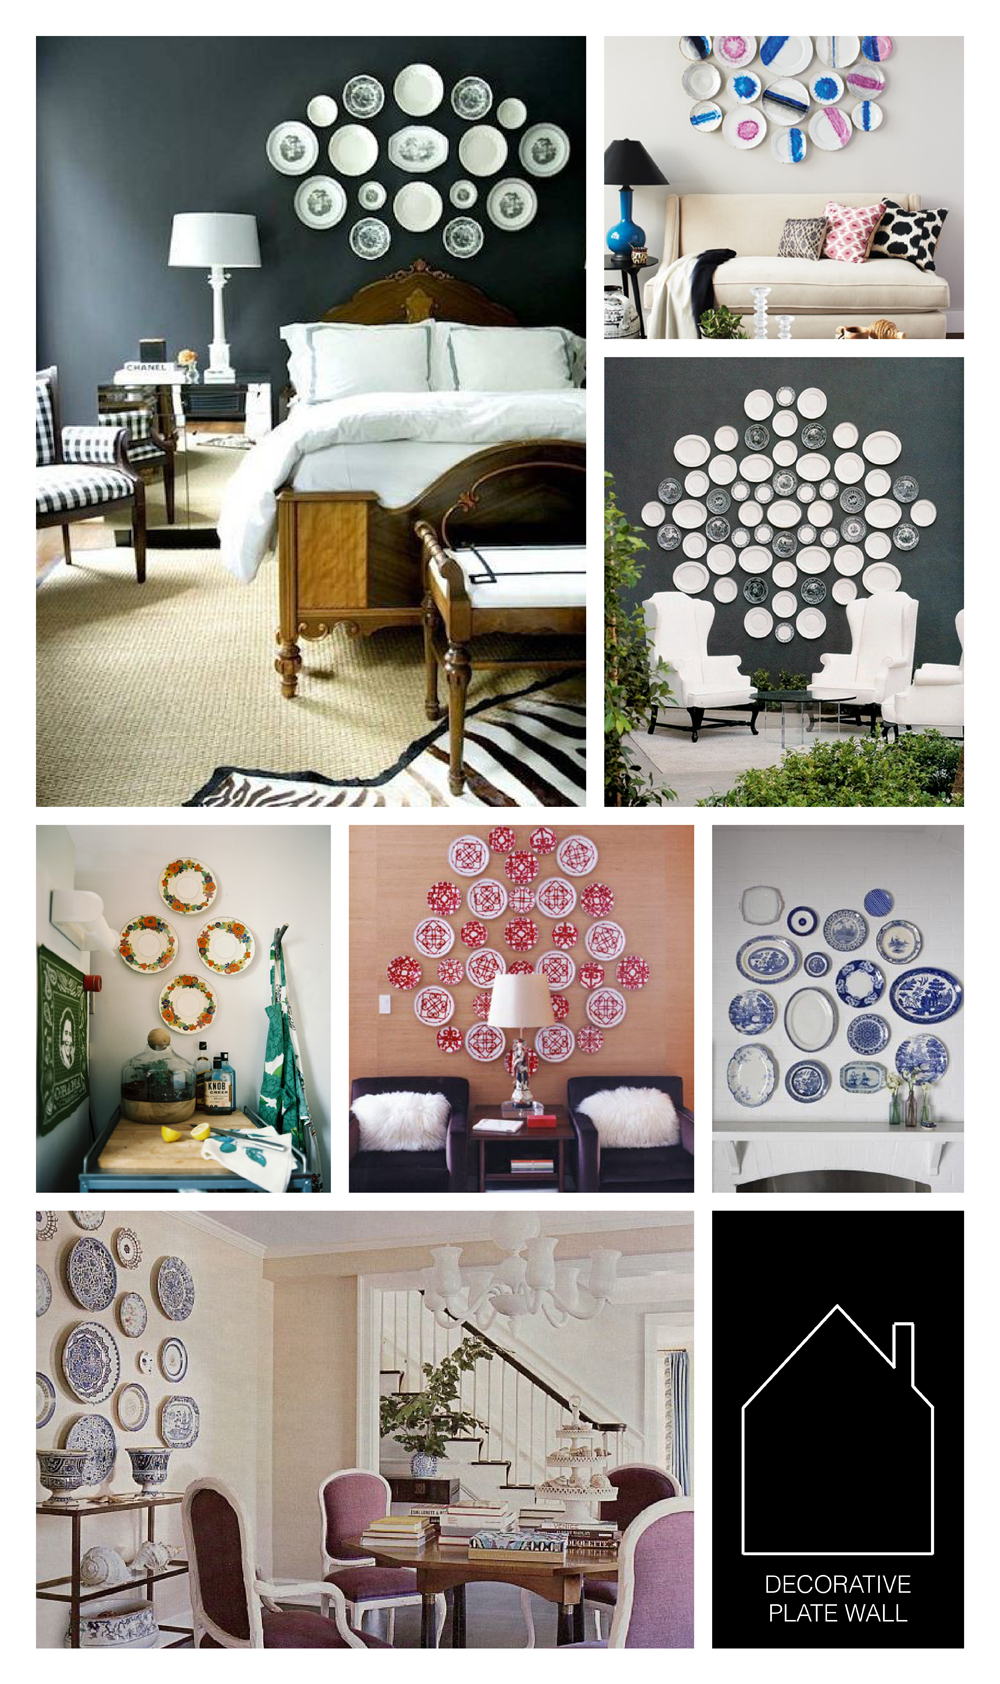 from top left - source unknown - via House & Home - The Viceroy Hotel in Santa Monica - home of Grace Bonney via Lonny - home of Laura Vinroot Poole via Domino - Black & Spiro design via REMODELISTA - via HomeDit